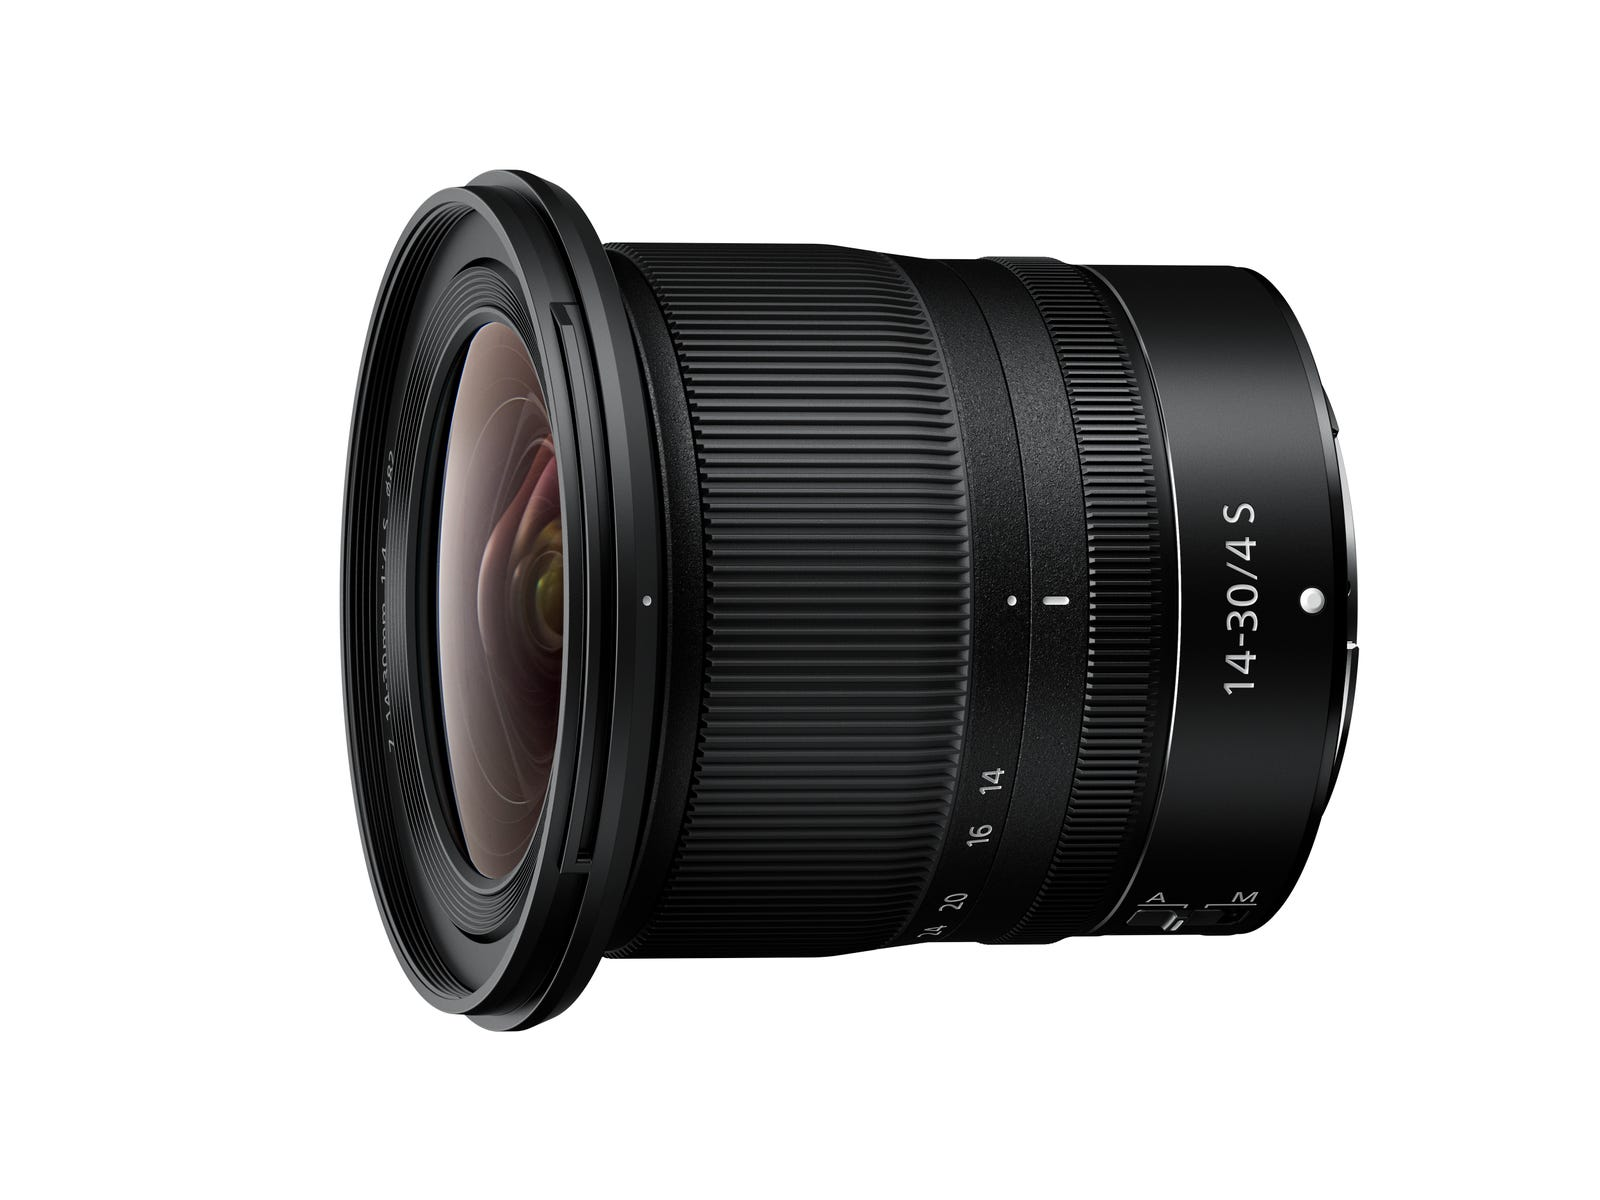 Illustration for article titled Nikon Adds a Powerful New 14-30mm Ultra-Wide Zoom to Its Z-series Lens Lineup